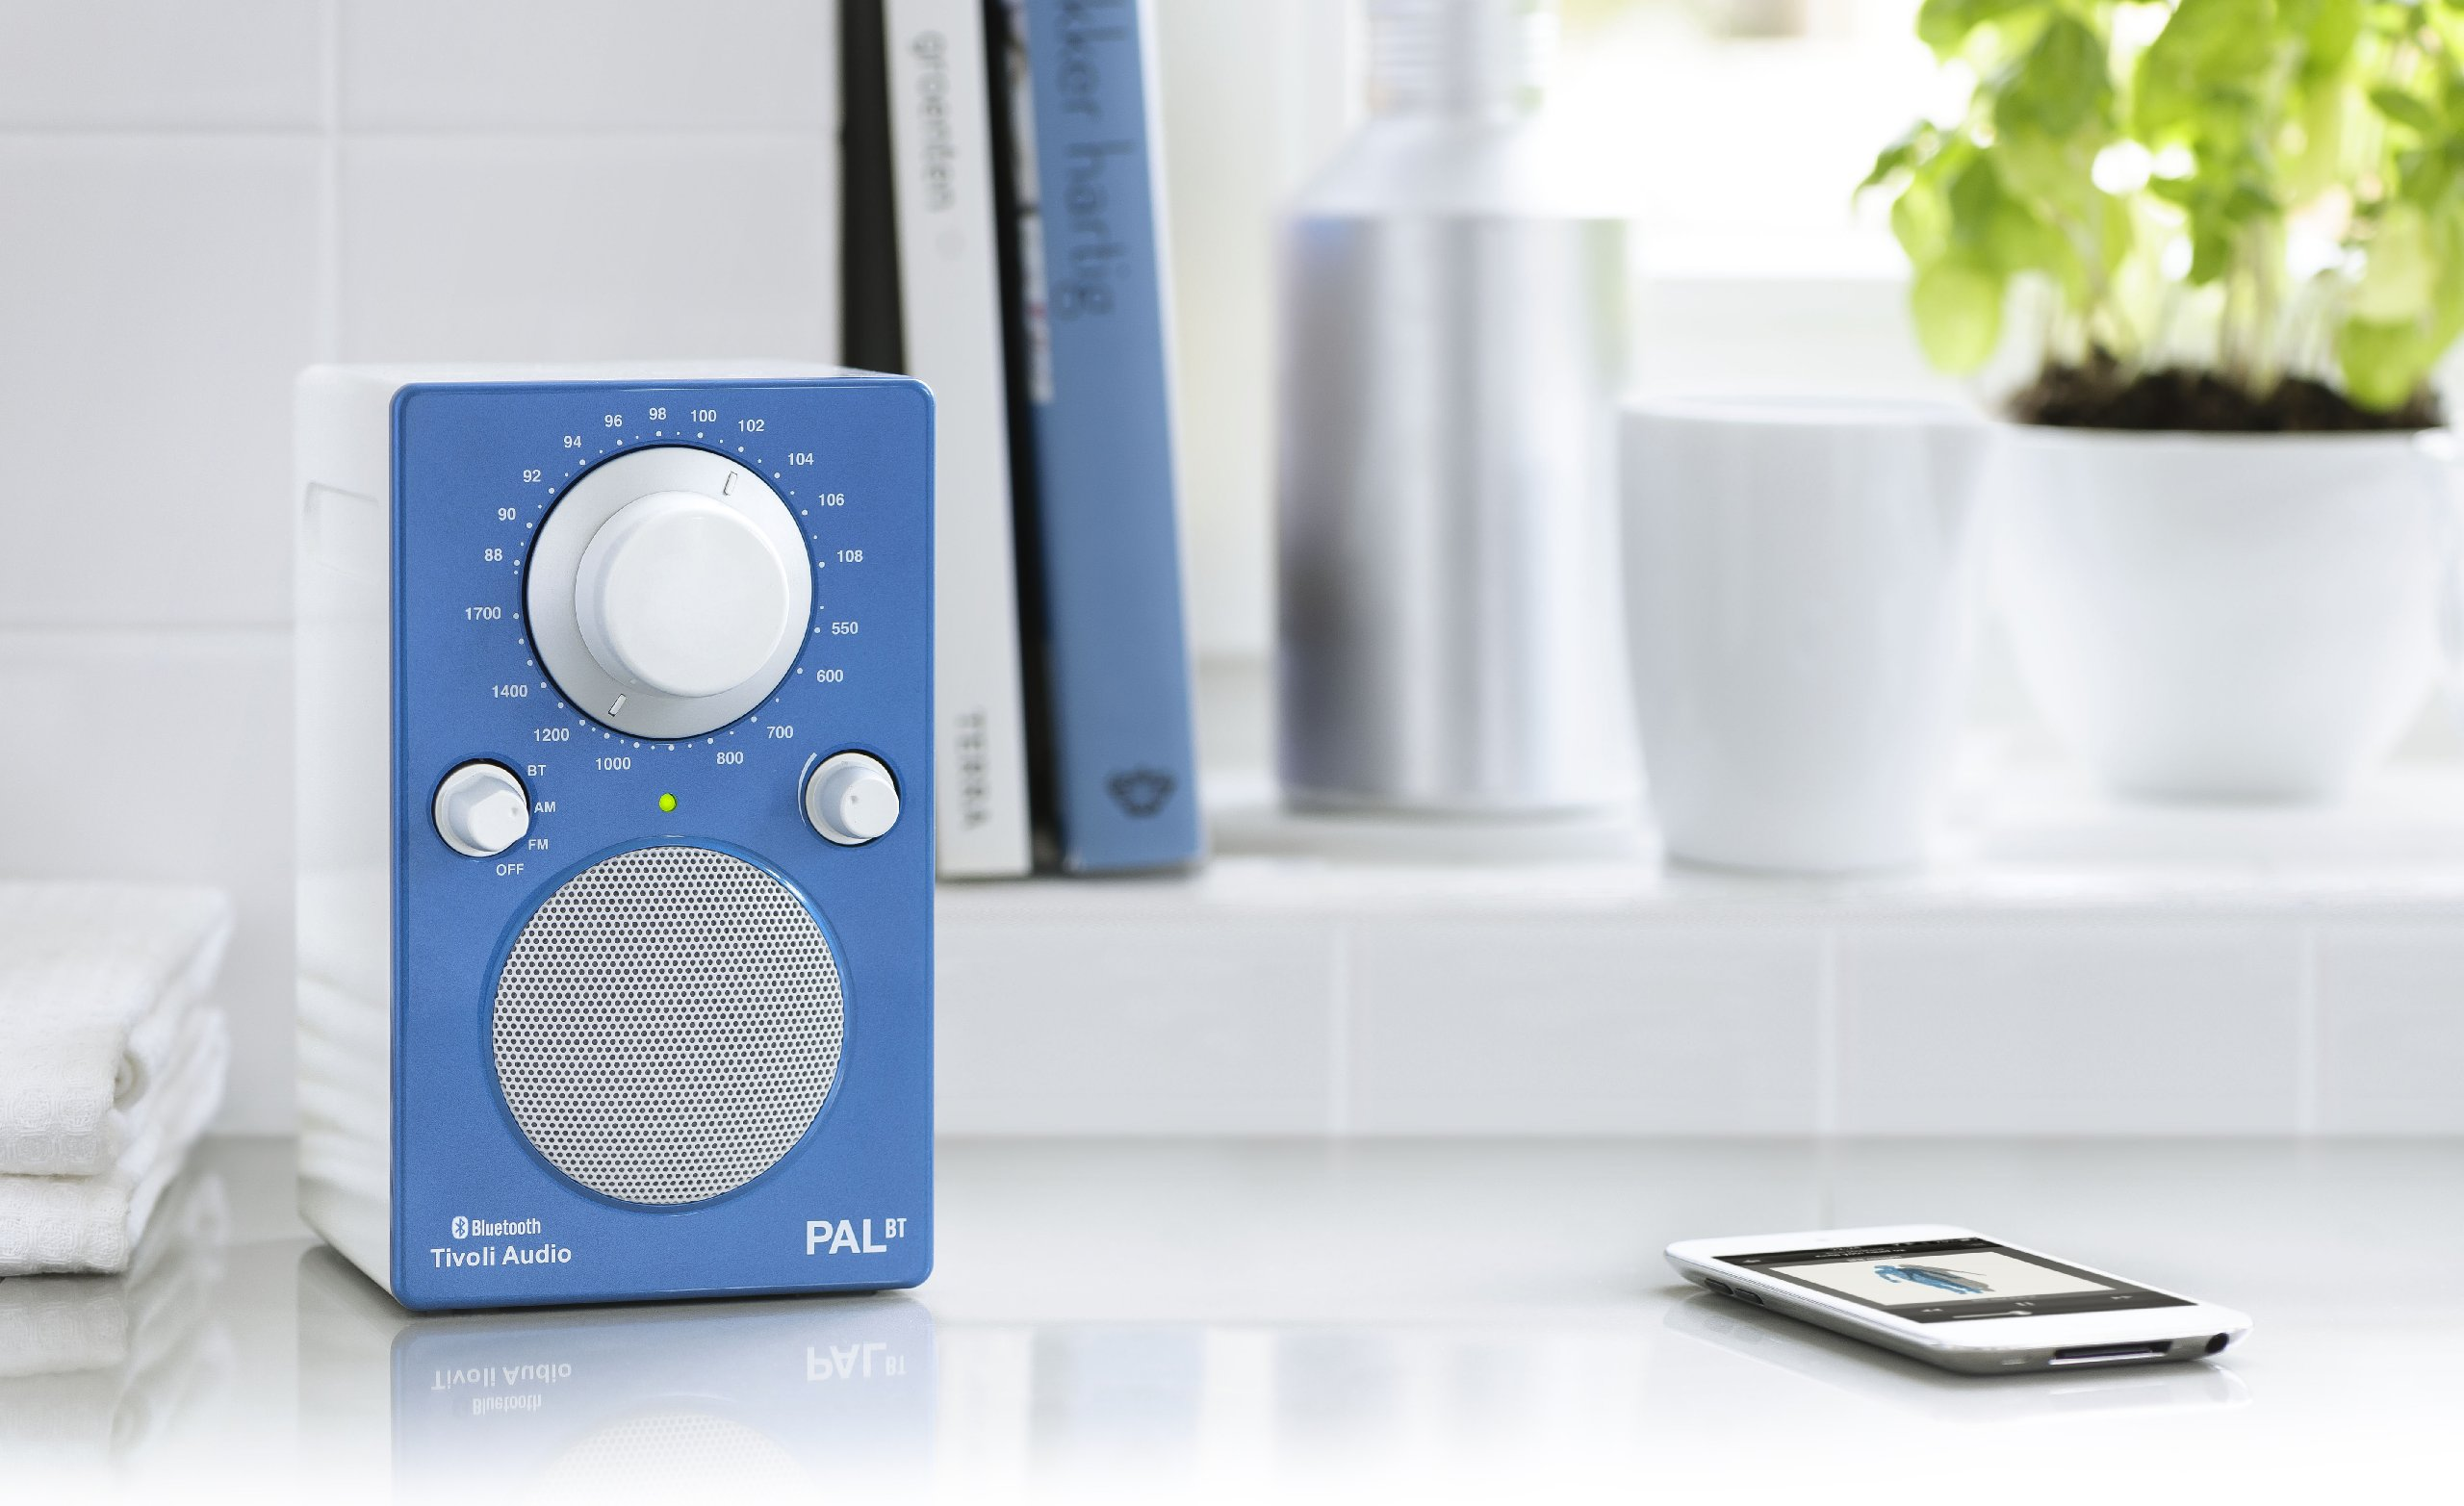 Tivoli Radio Pal Tivoli Audio Pal Bt Bluetooth Portable Radio Glossy Blue White